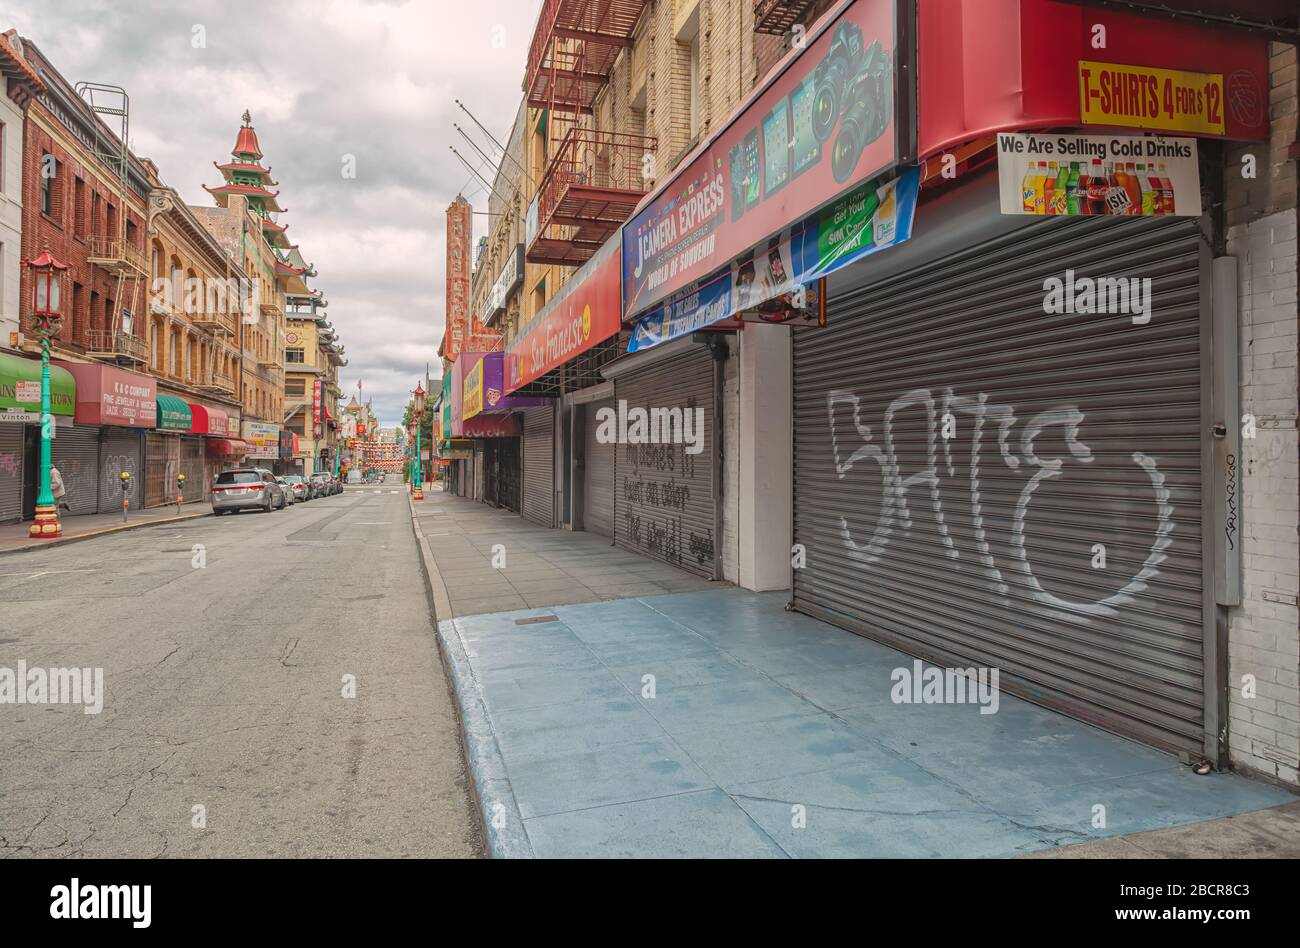 San Francisco Chinatown is empty of tourists and traffic during the city lockdown due to COVID-19 pandemic March 2020, California, USA. Stock Photo